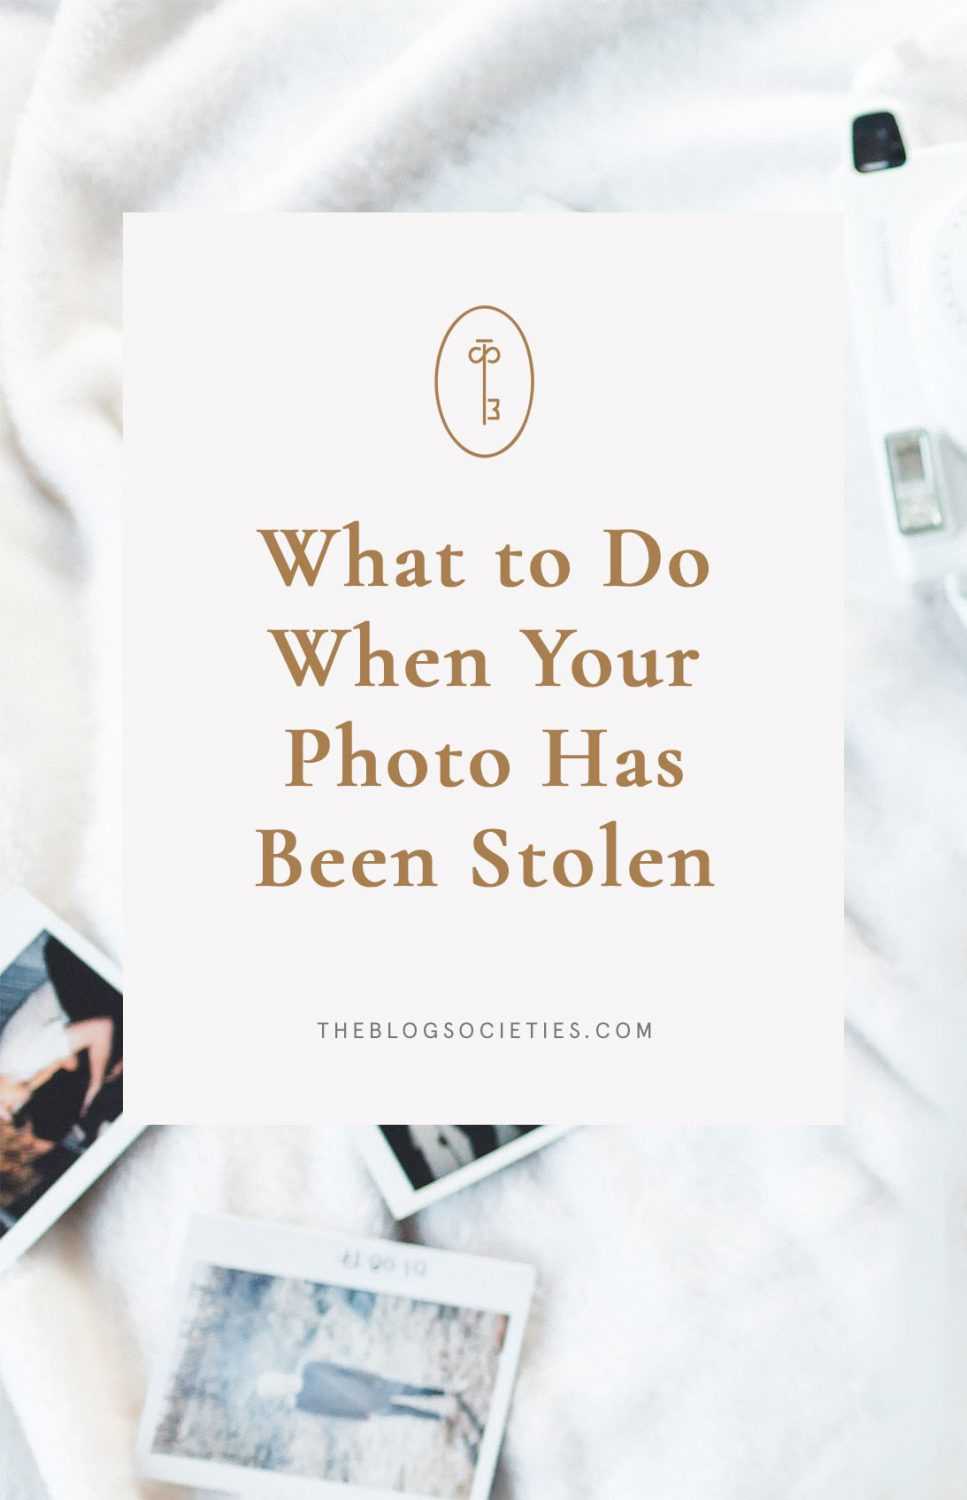 What To Do When Your Photo Has Been Stolen   The Blog Societies